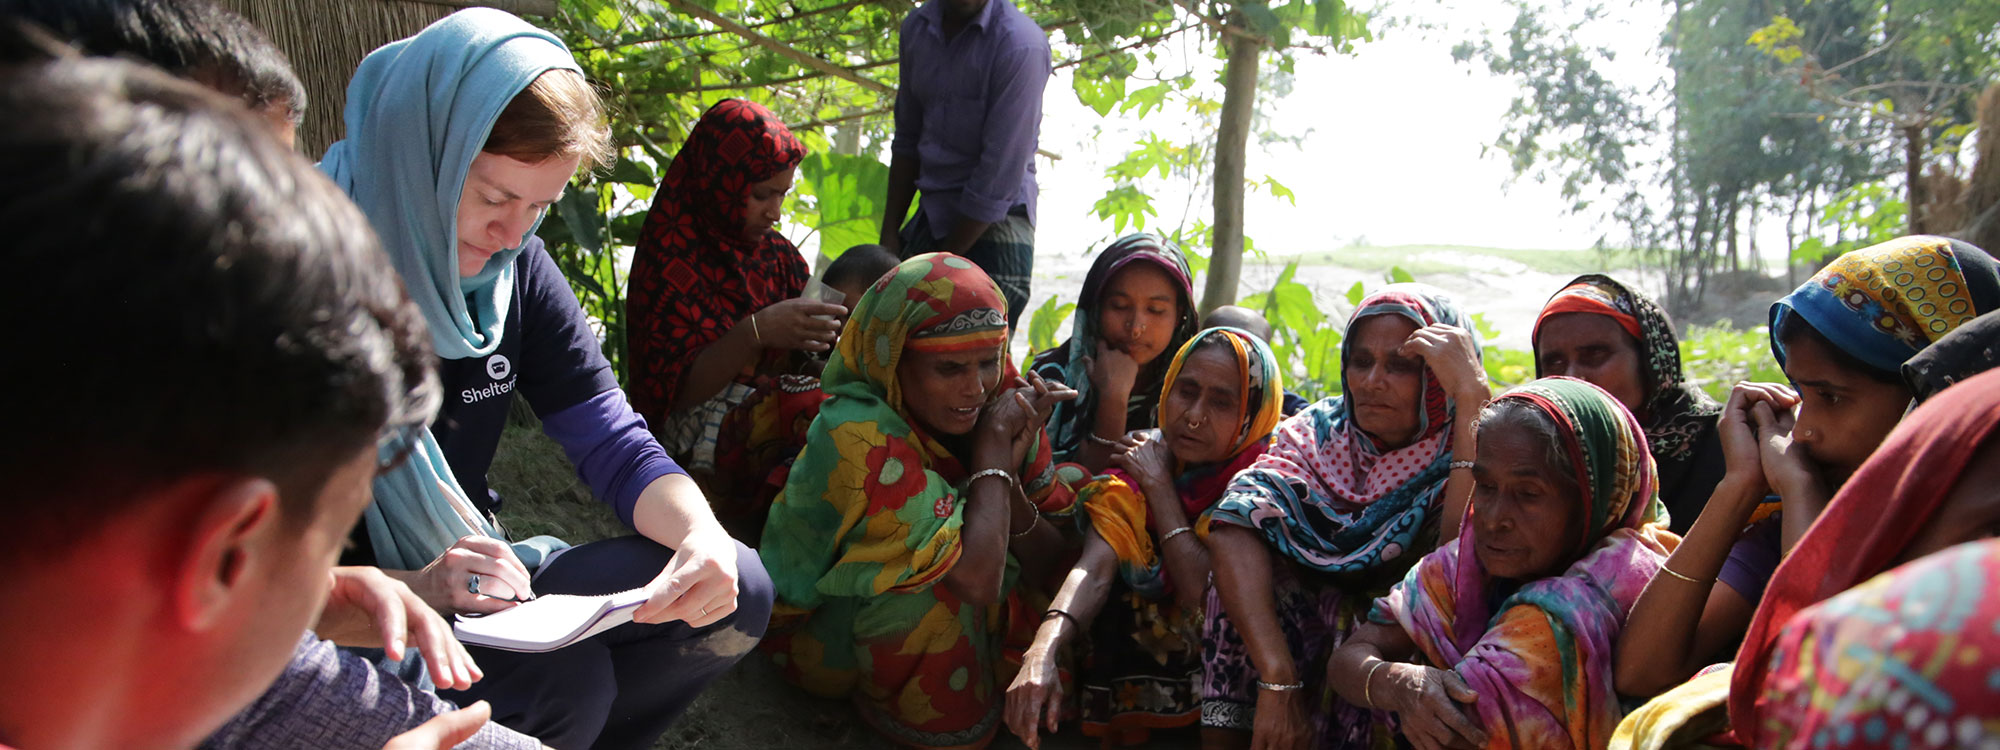 shelterbox conduct monitoring and evaluation in bangladesh